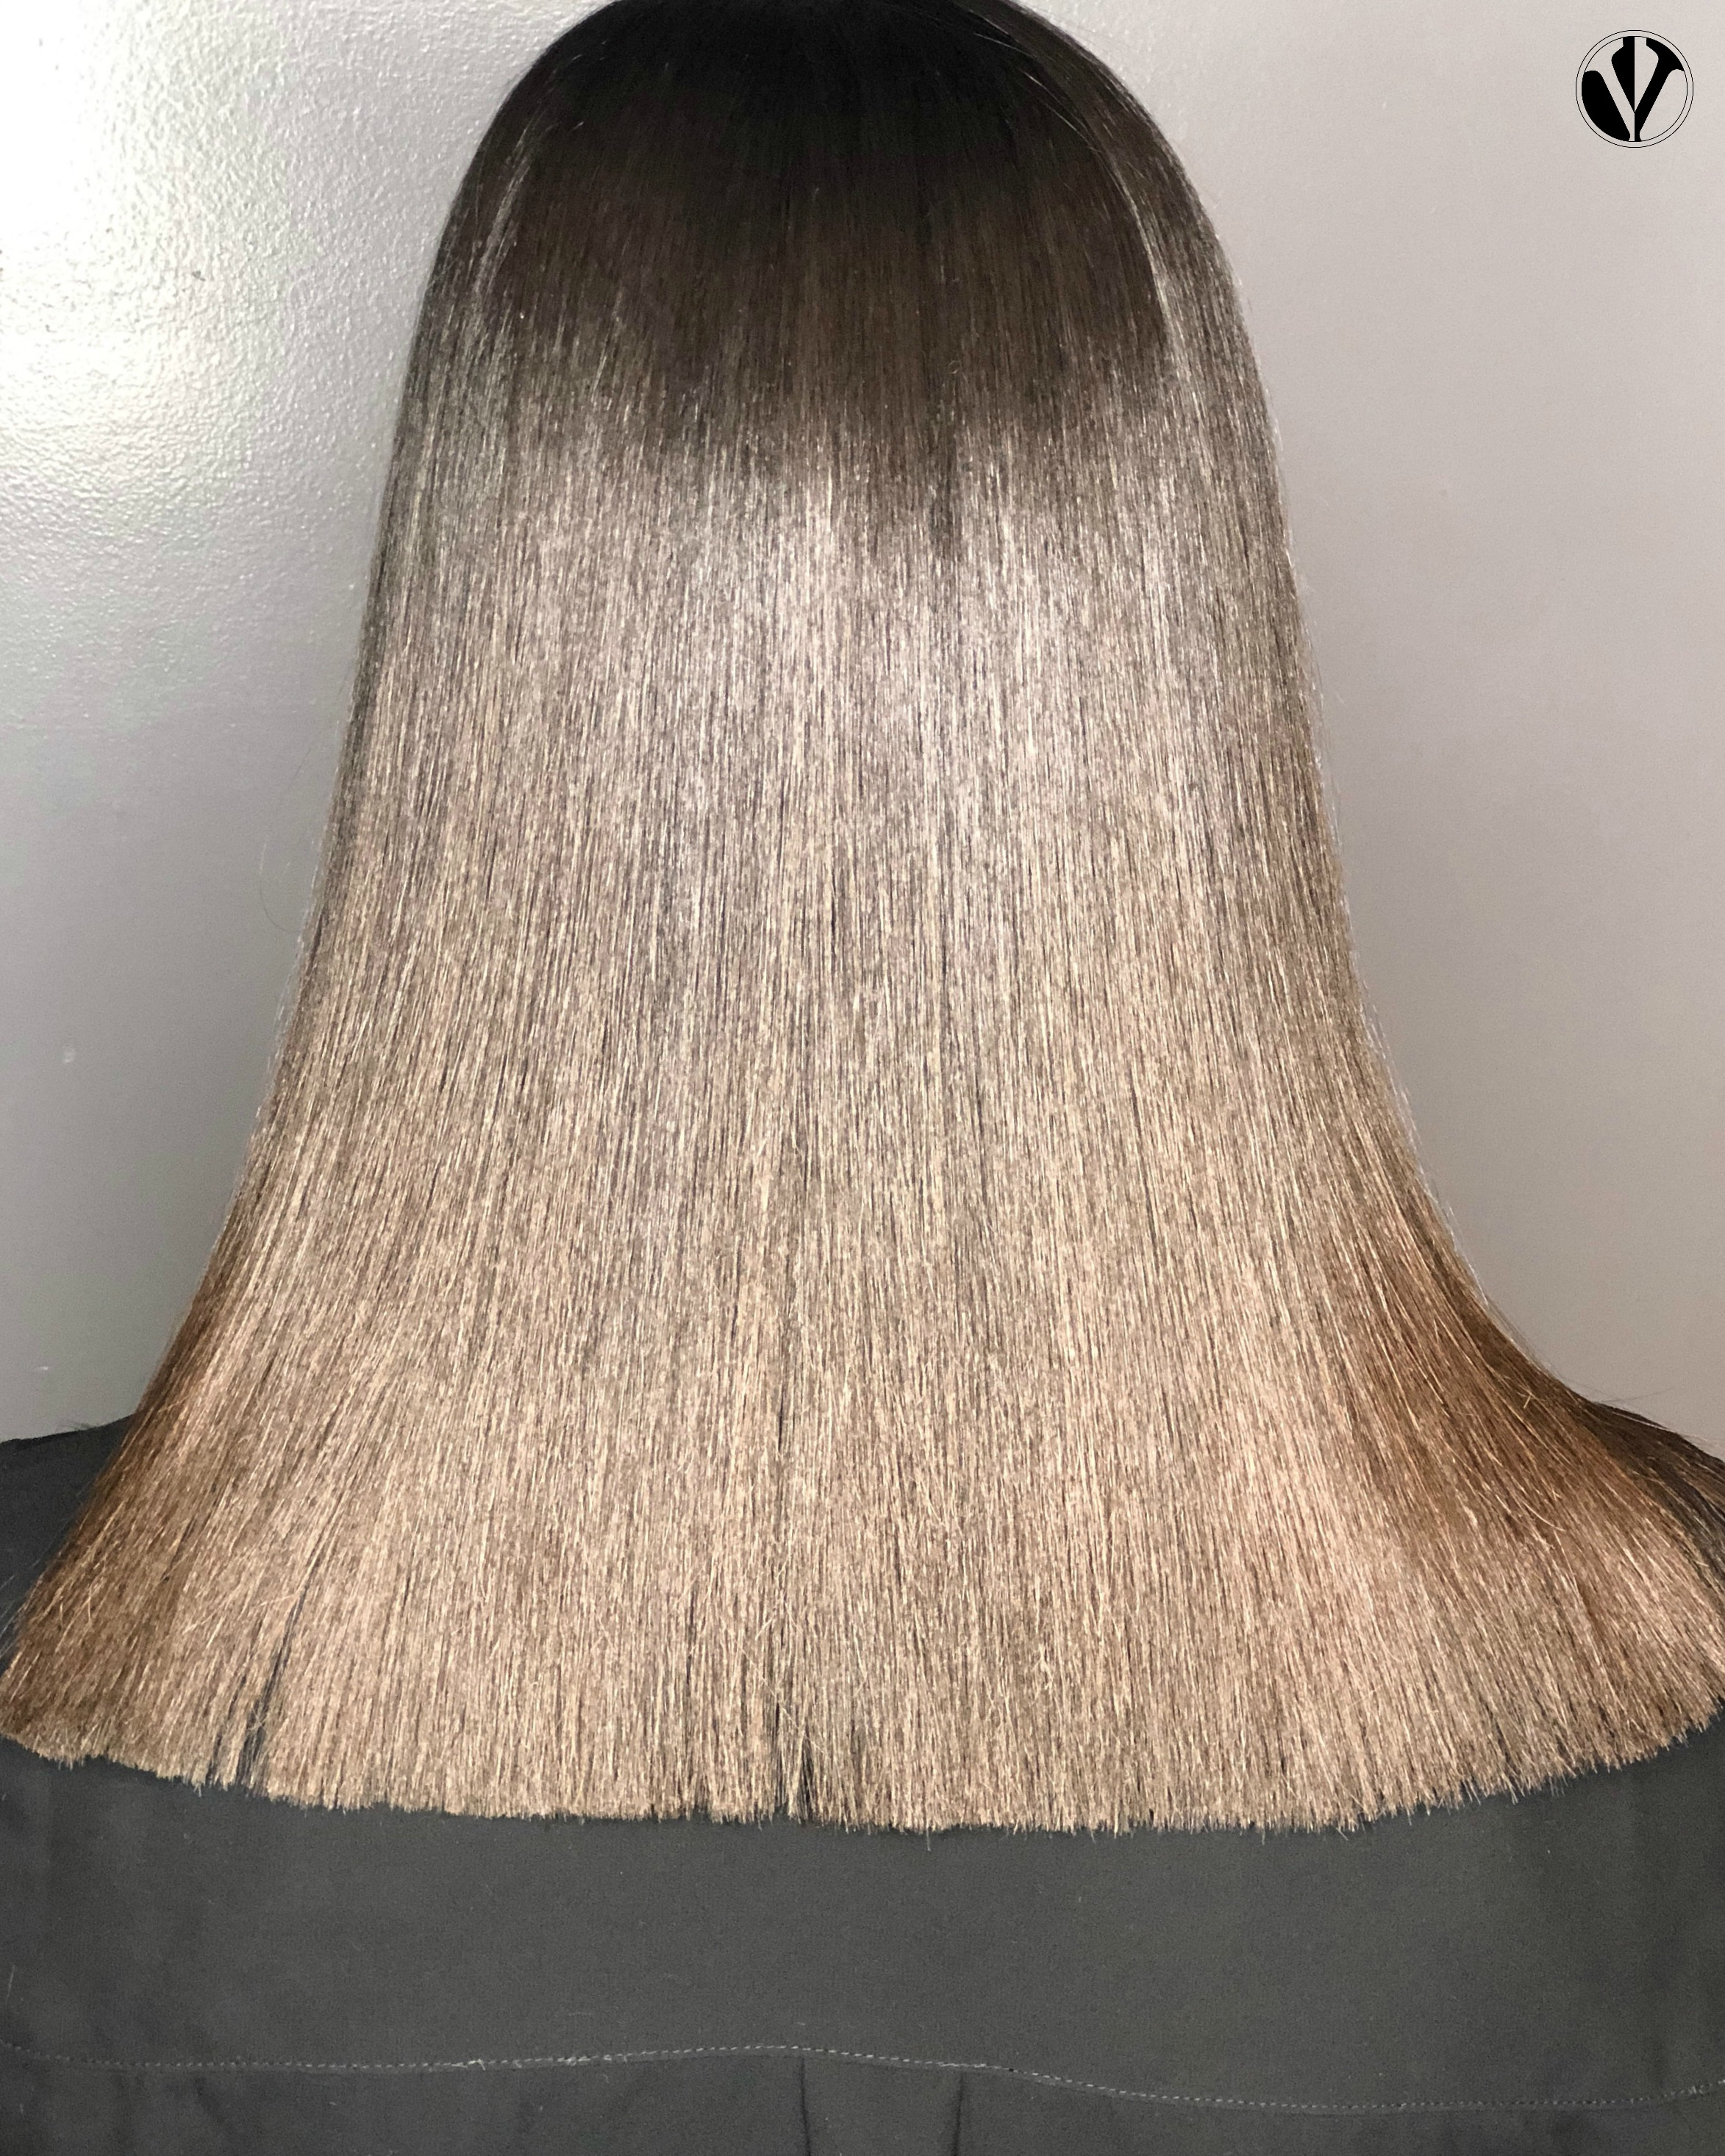 This photo shows the result of an End Trim service where the hair is all one even length